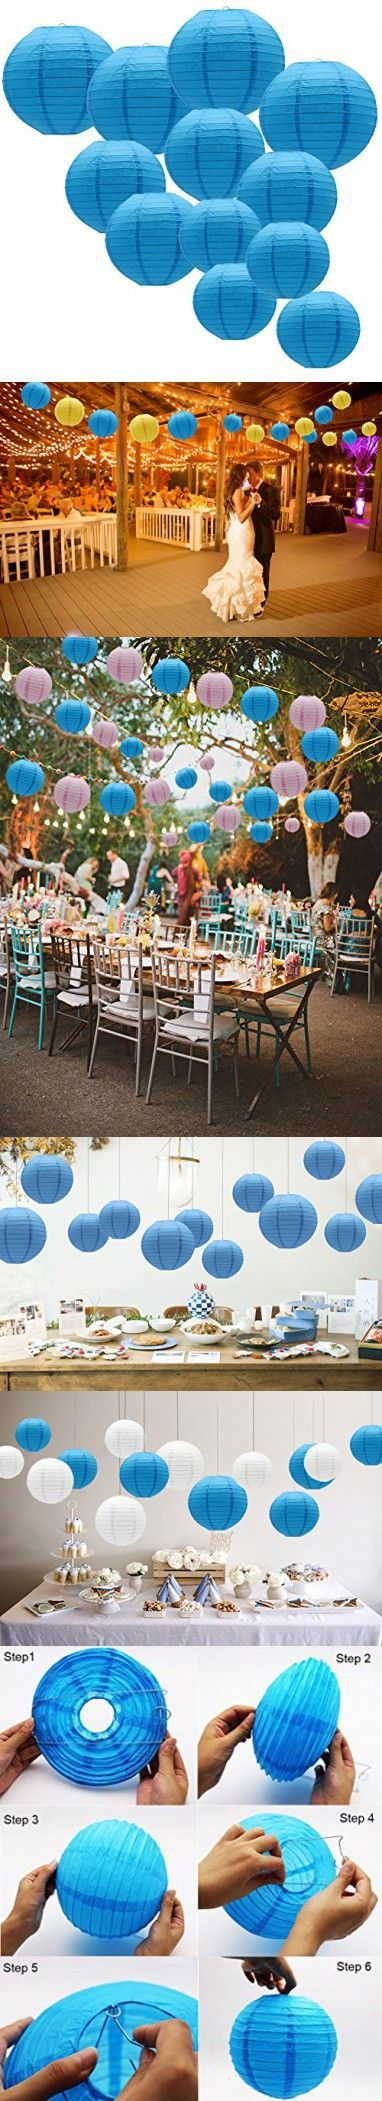 KAXIXI #Round #Hanging #Paper #Lanterns #Decorations #for #Wedding #Birthday #Baby #Showers #...